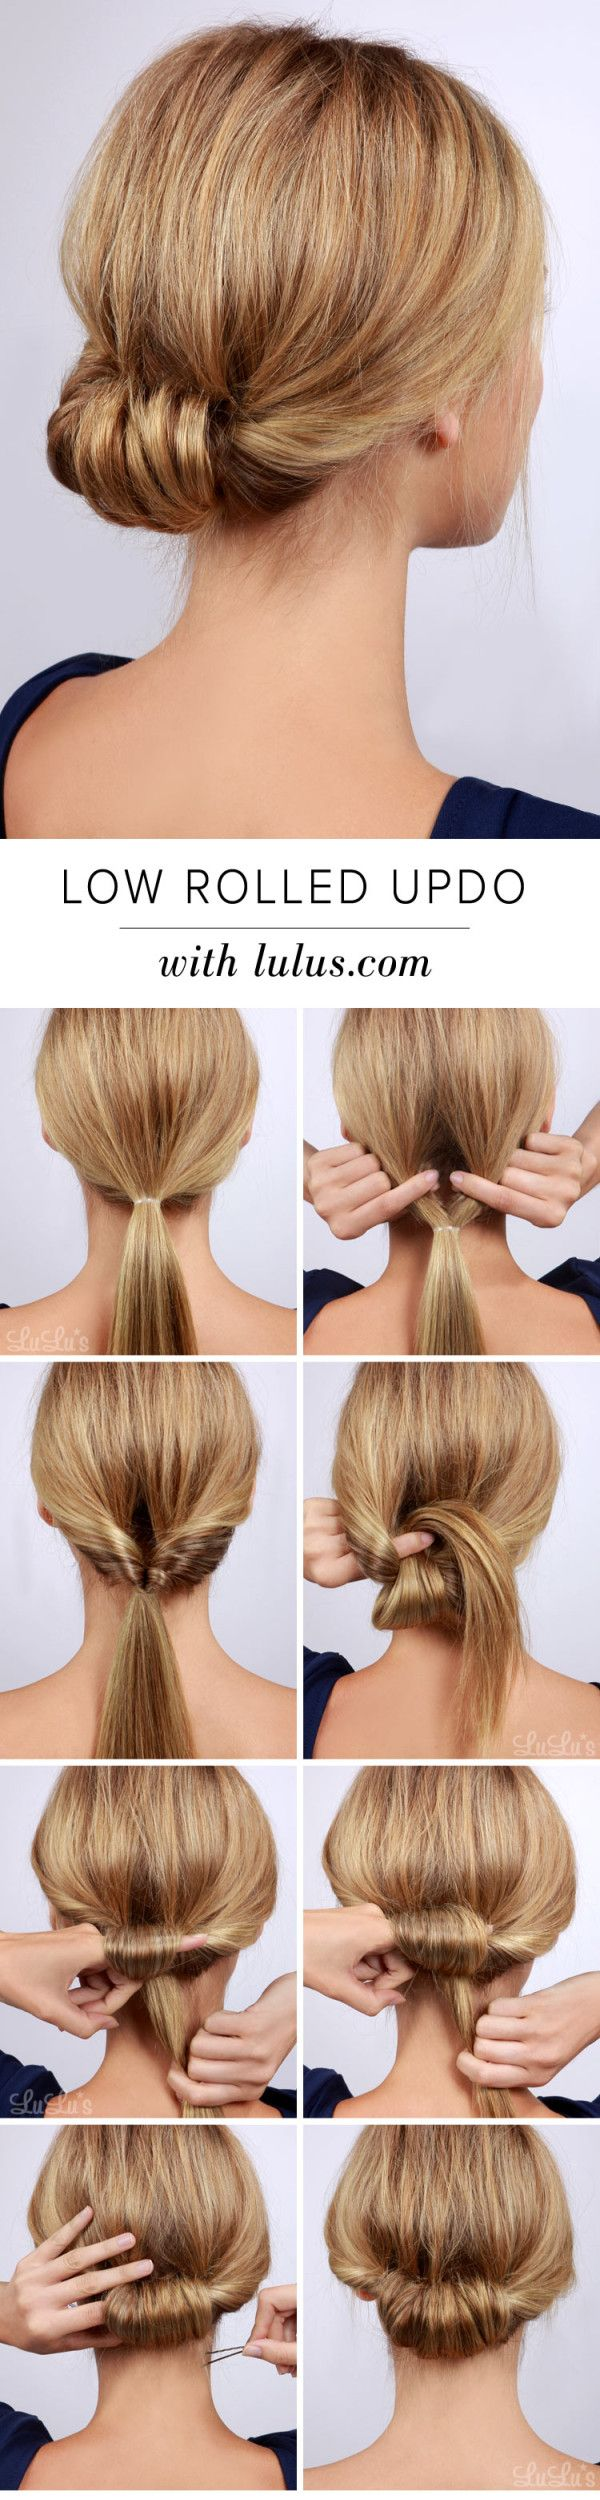 fast and super creative diy hairstyle ideas for more spectacular